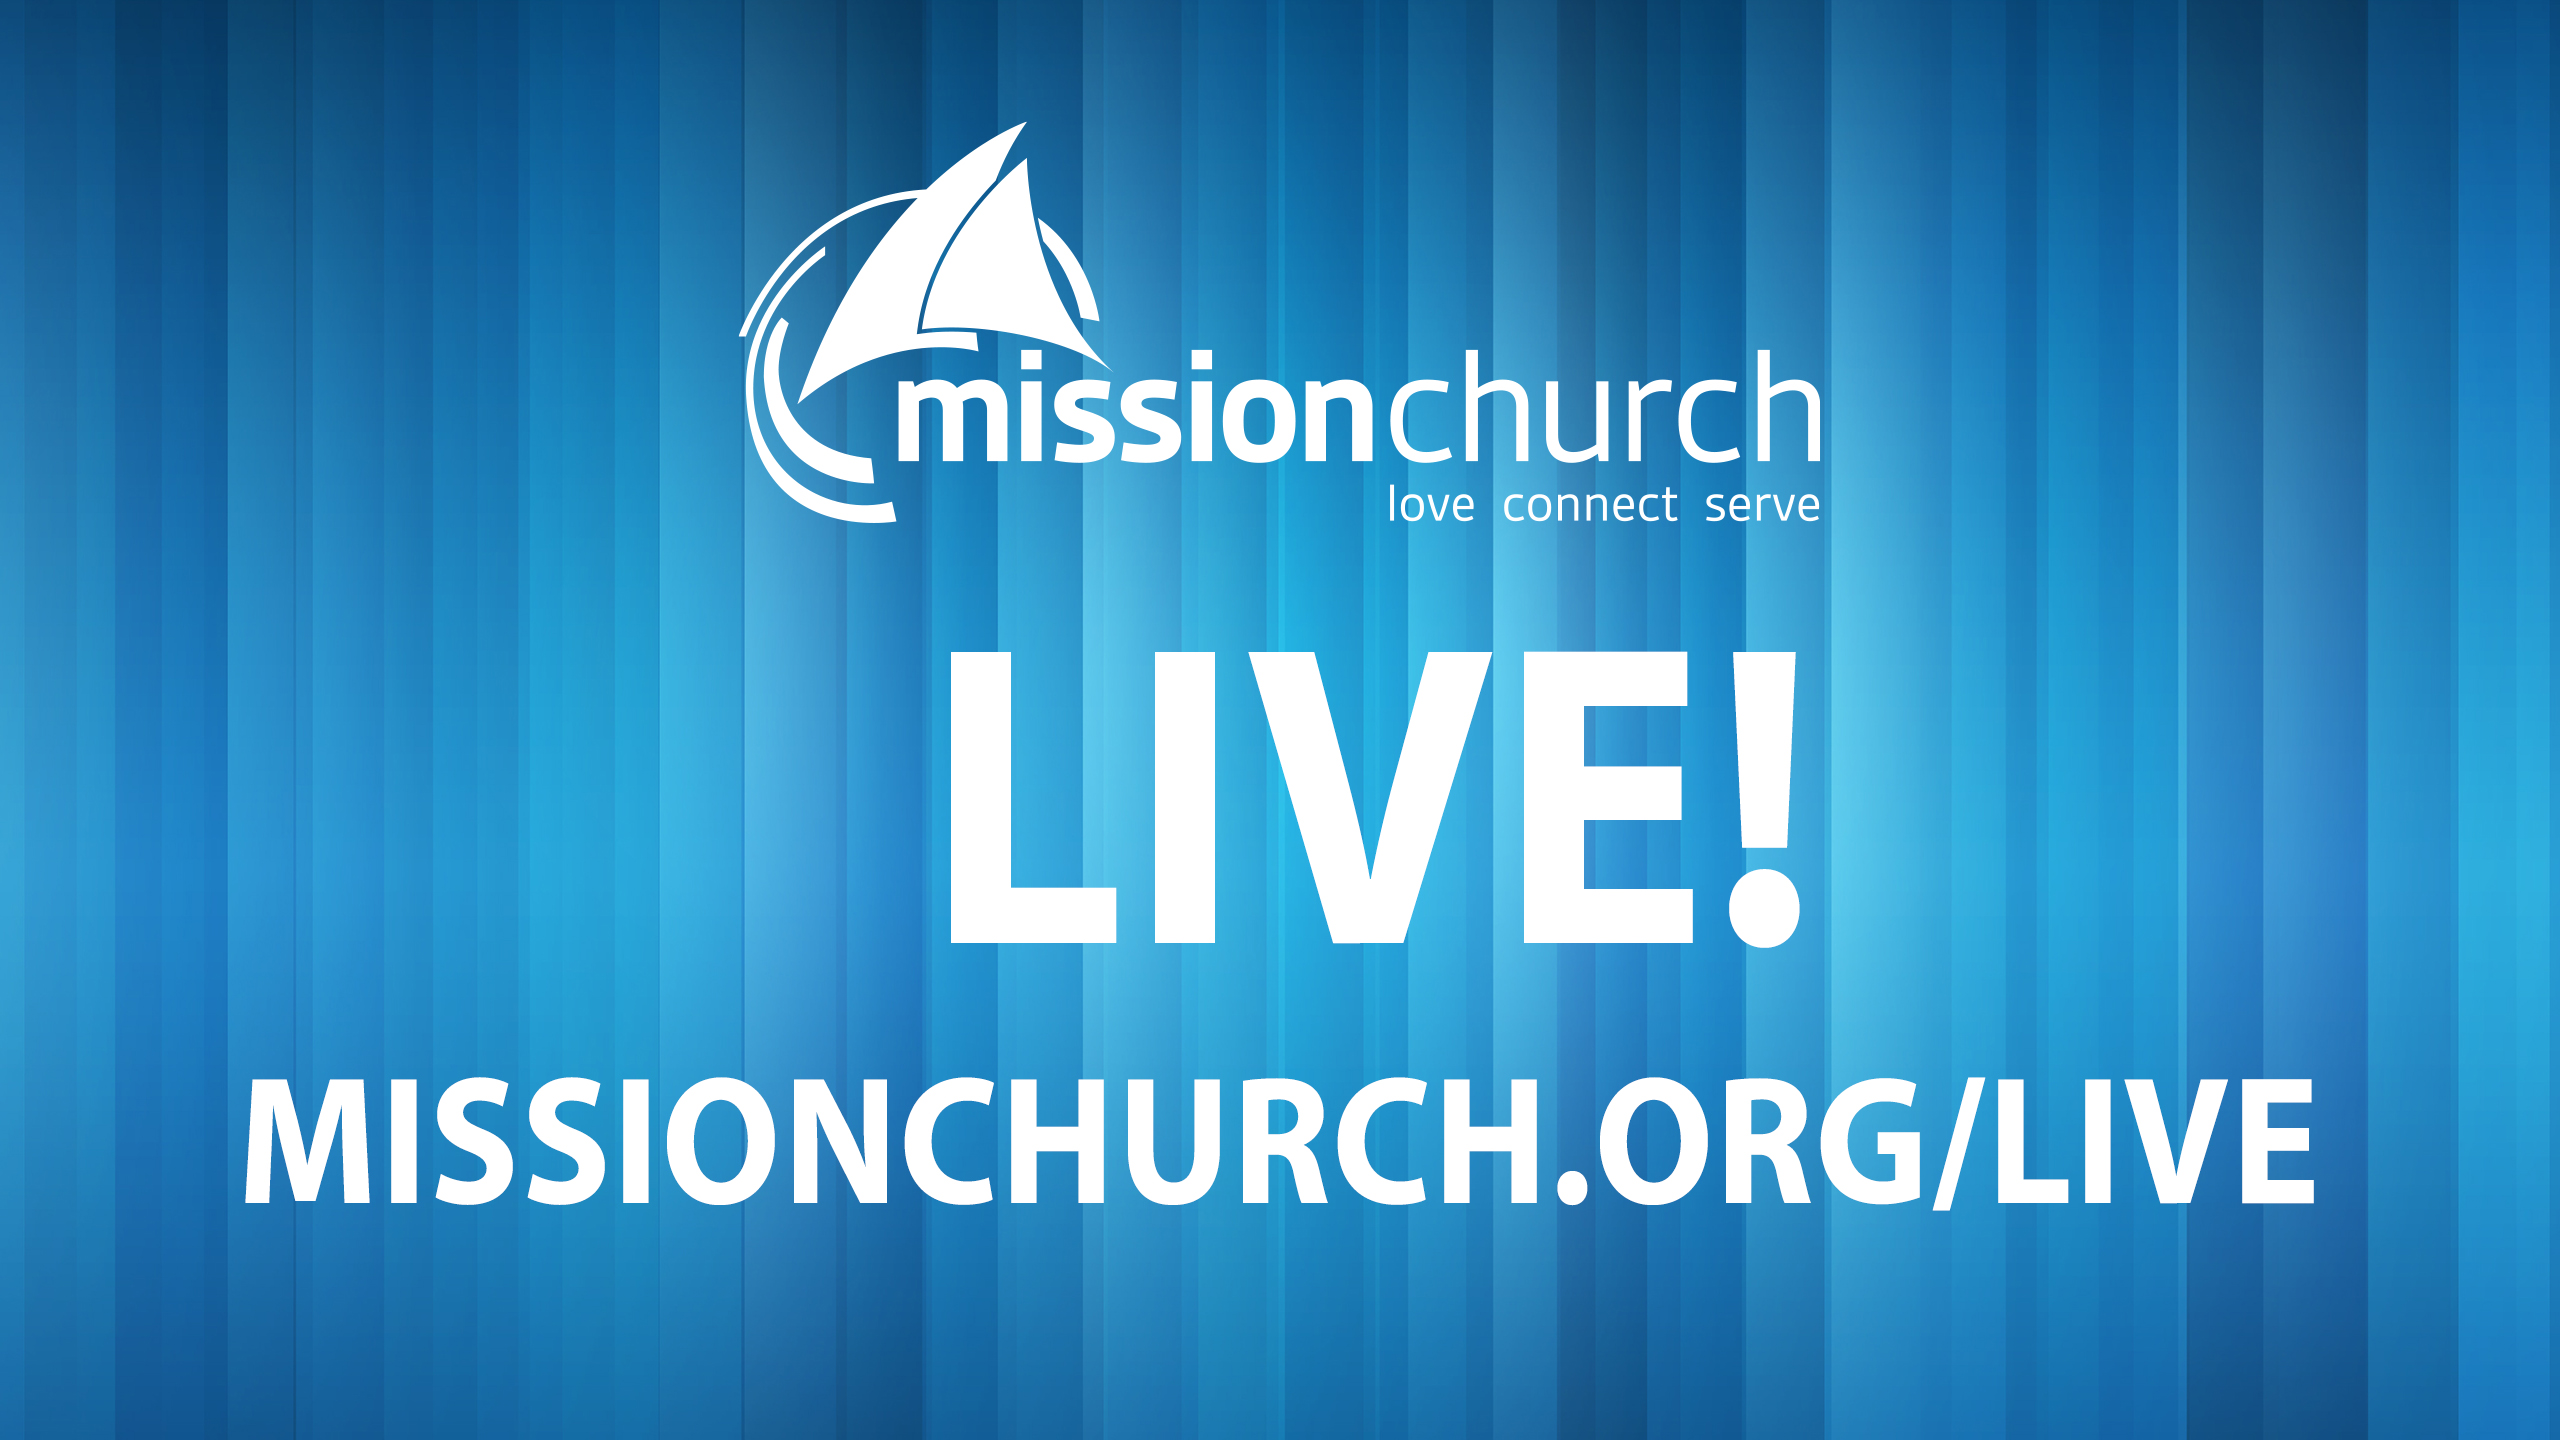 https://www.missionchurch.org/live